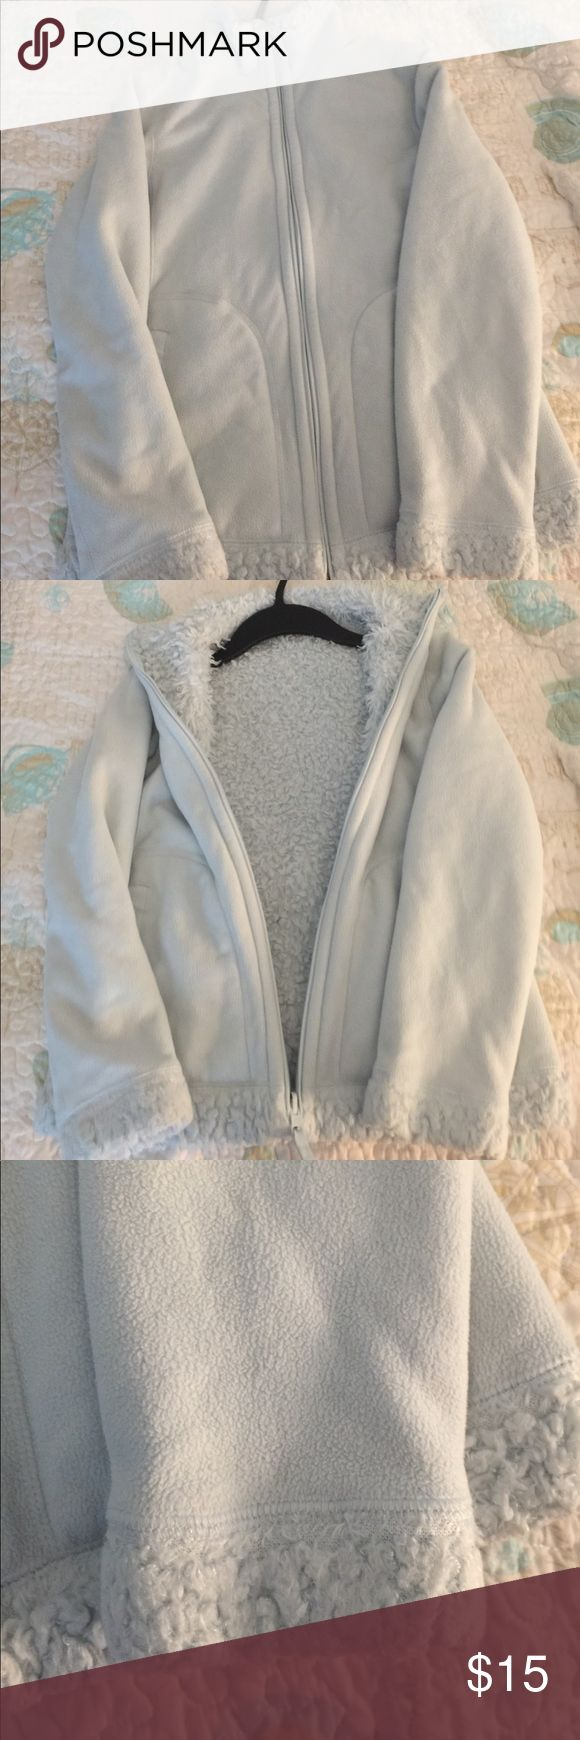 Uniqlo blue jacket xs reversible Reversible female xs uniqlo jacket. Super soft and comfortable. Clean, well cared for. Will ship fast Uniqlo Jackets & Coats